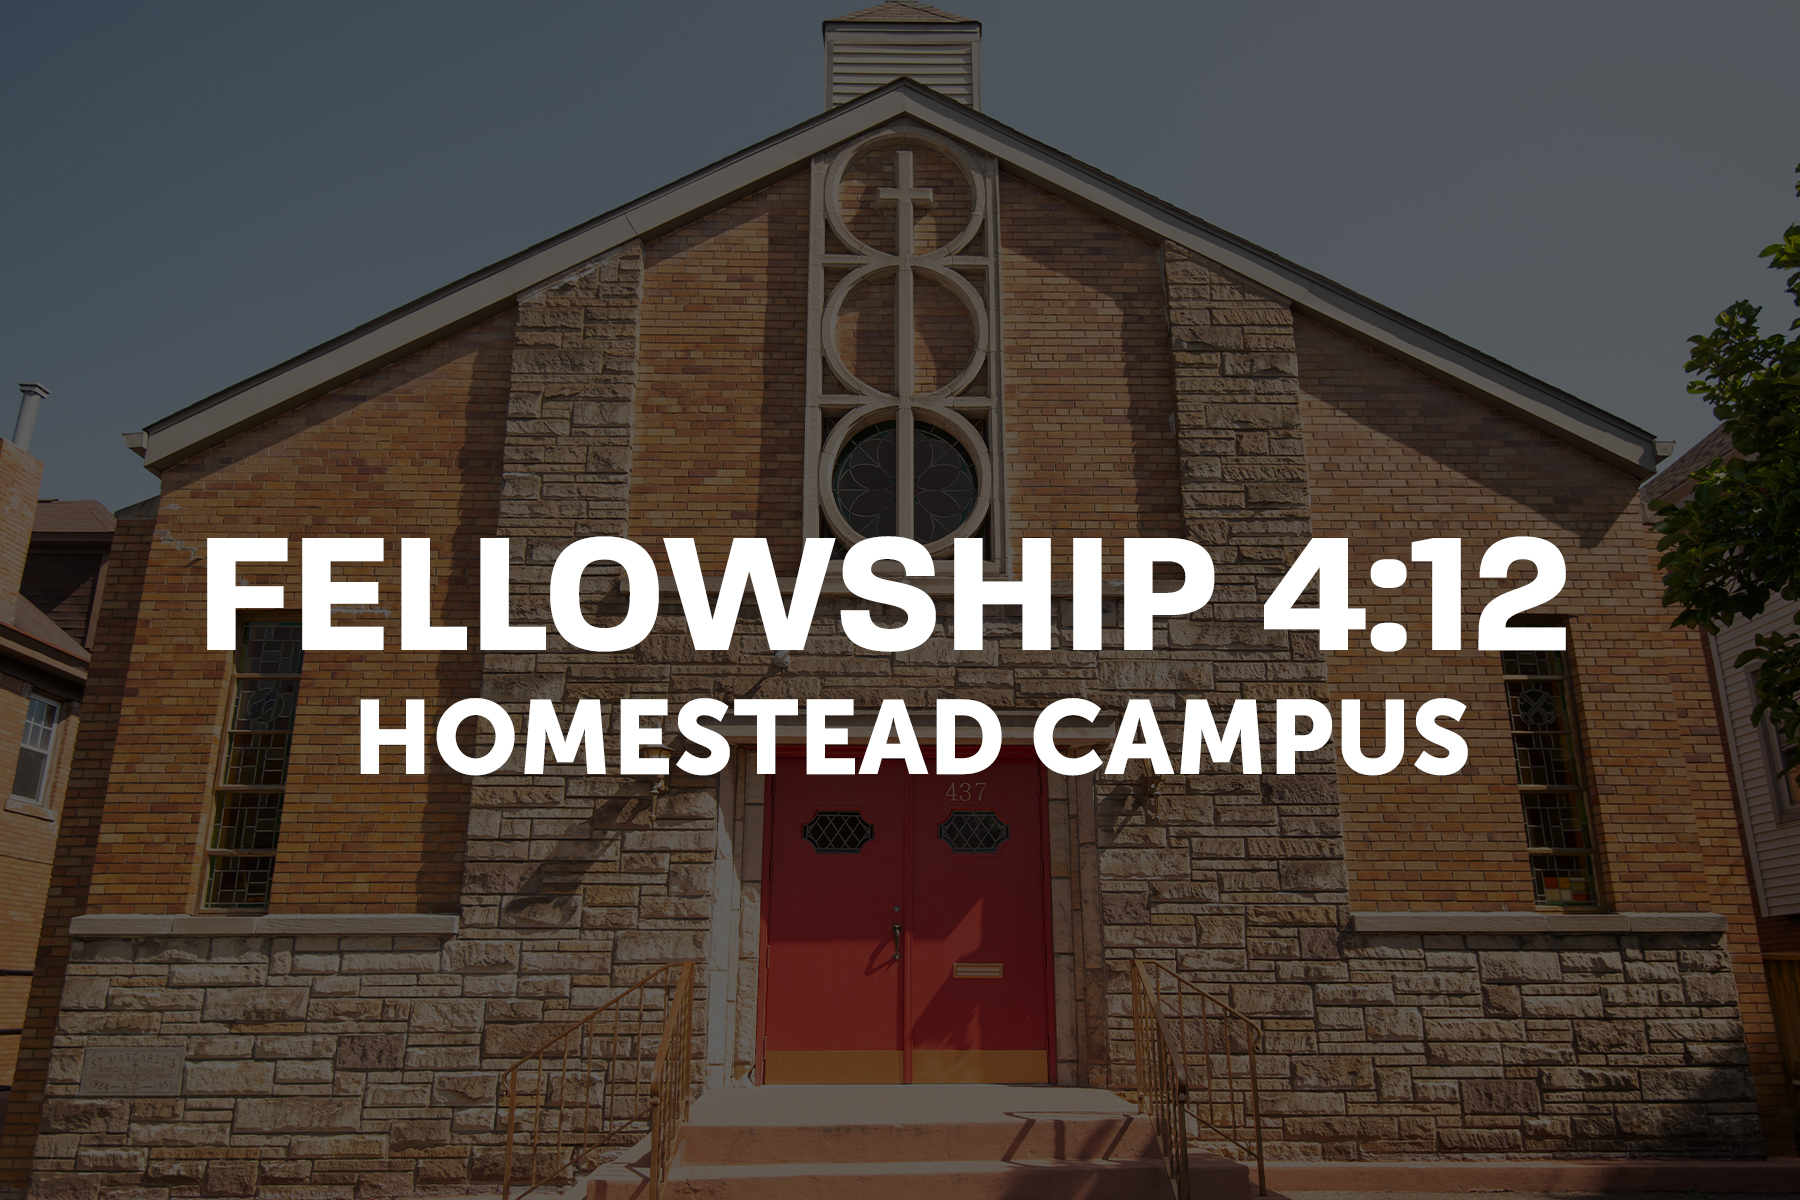 Fellowship 4:12